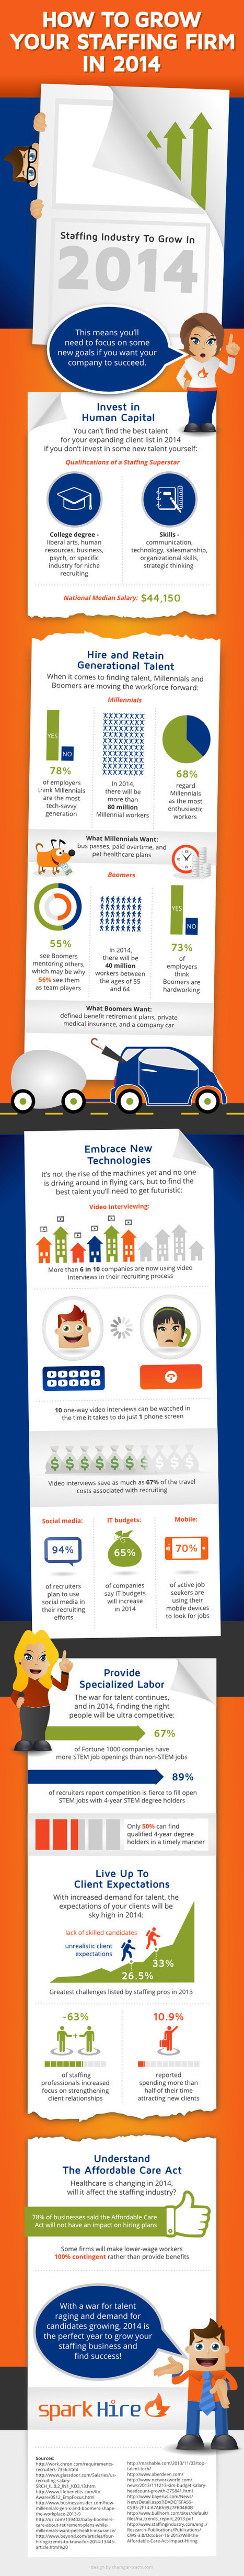 How to Grow Your Staffing Firm with Demand in 2014 [INFOGRAPHIC] - Spark Hire | Global Recruitment trends | Scoop.it